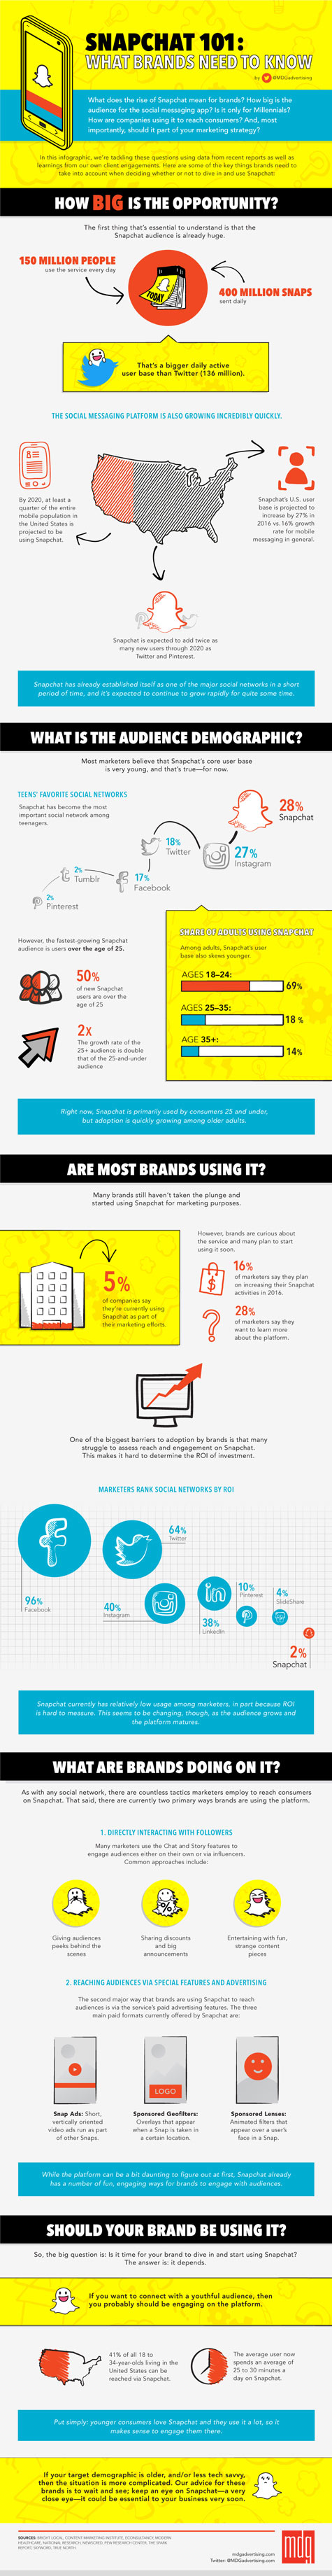 Original post: http://www.socialmediatoday.com/social-business/snapchat-101-what-brands-need-know-infographic